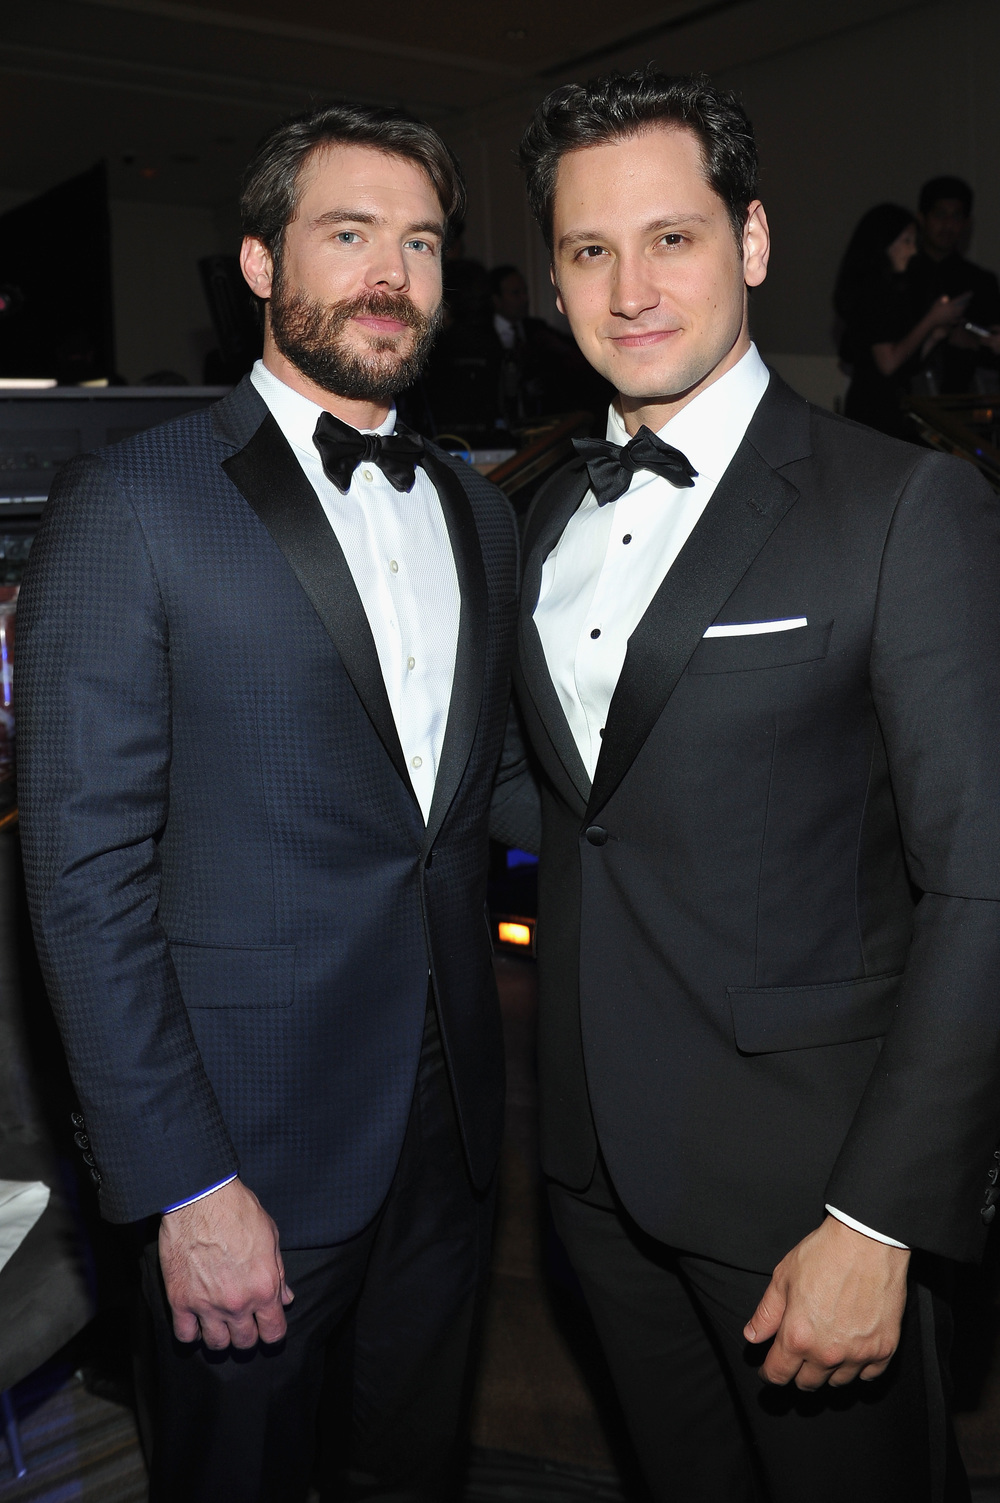 Charlie Weber and Matt McGorry at the 2016 UNICEF Ball